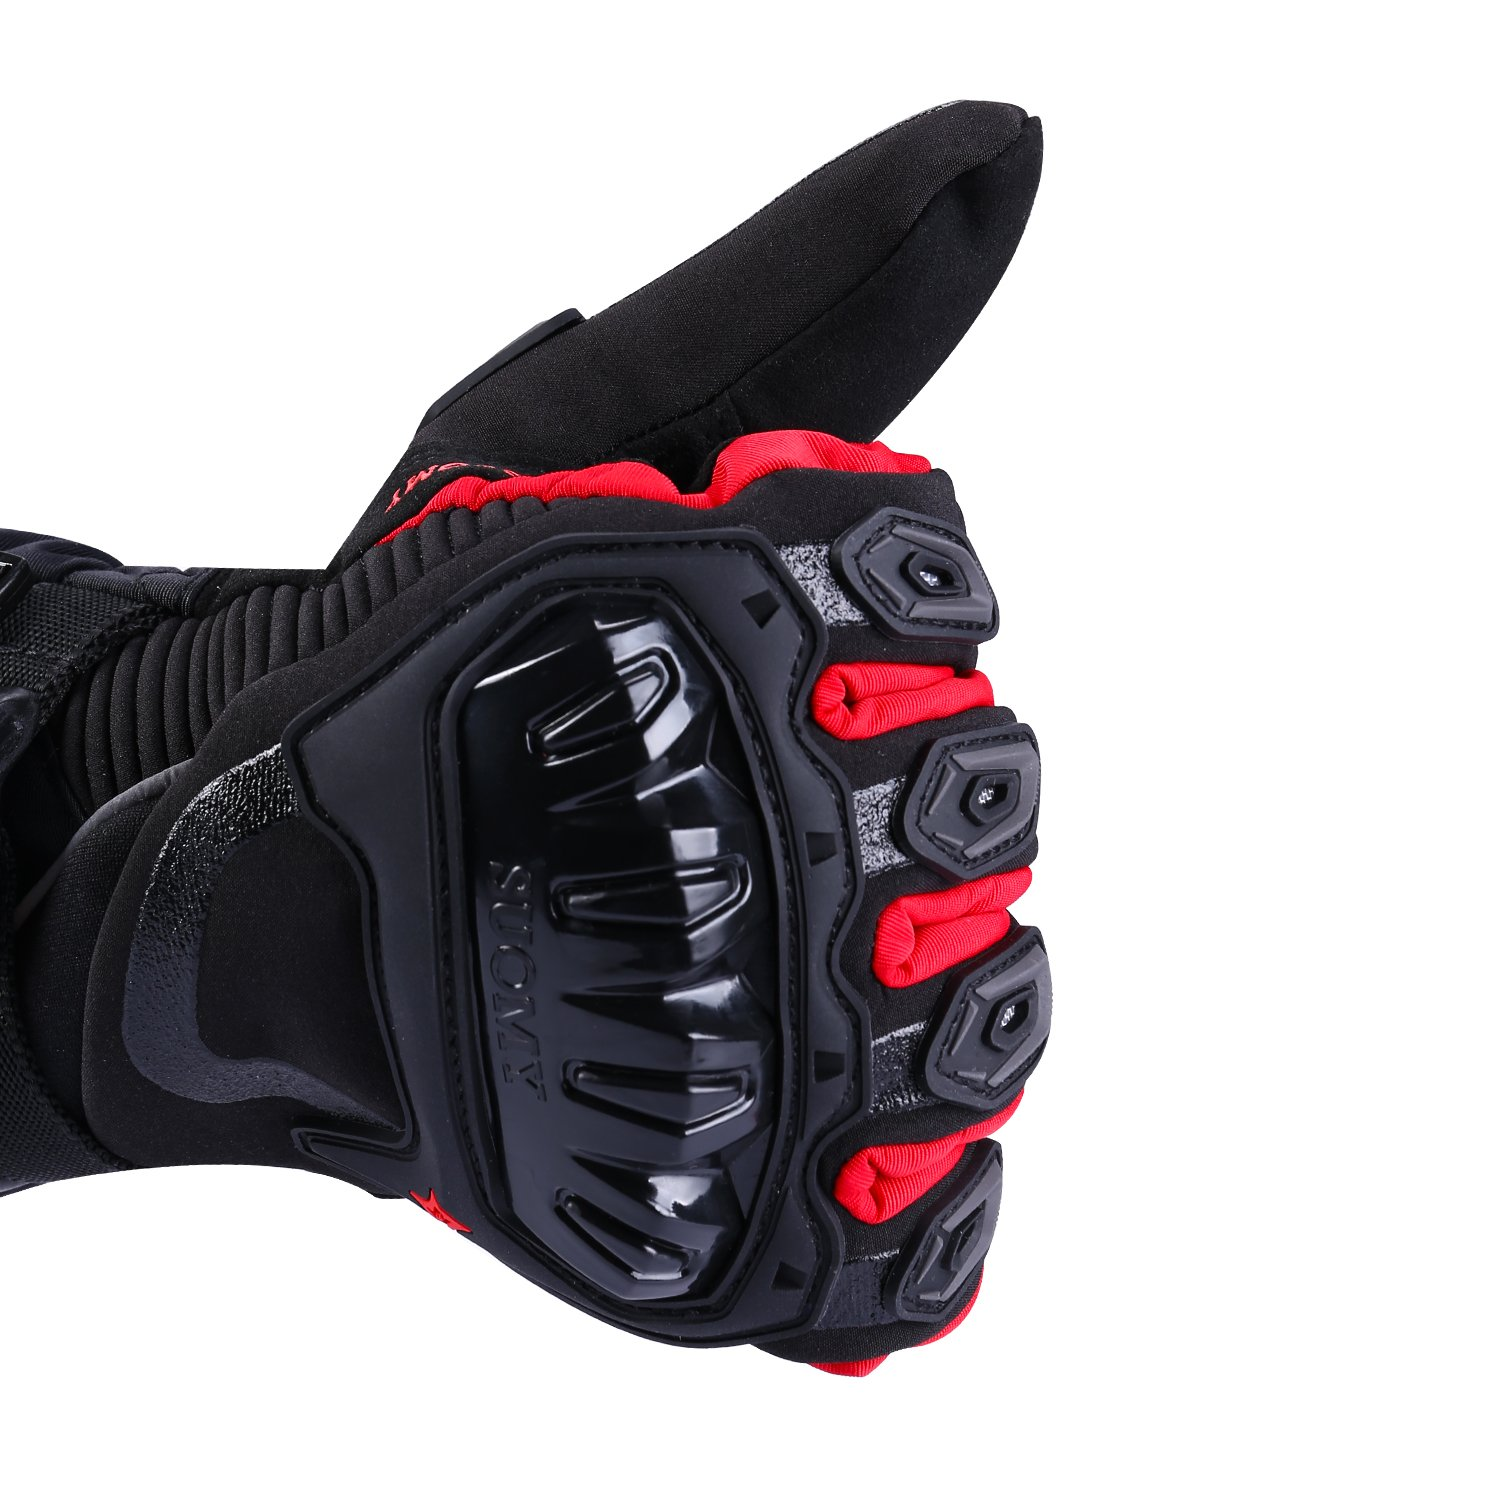 Hard Knuckle Palm Finger Protection Motorbike Riding Gloves Touch Screen Function TAGVO Warm Windproof Waterproof Snug Fit Good Grip Long Cuff Well Stitched Hand Protector